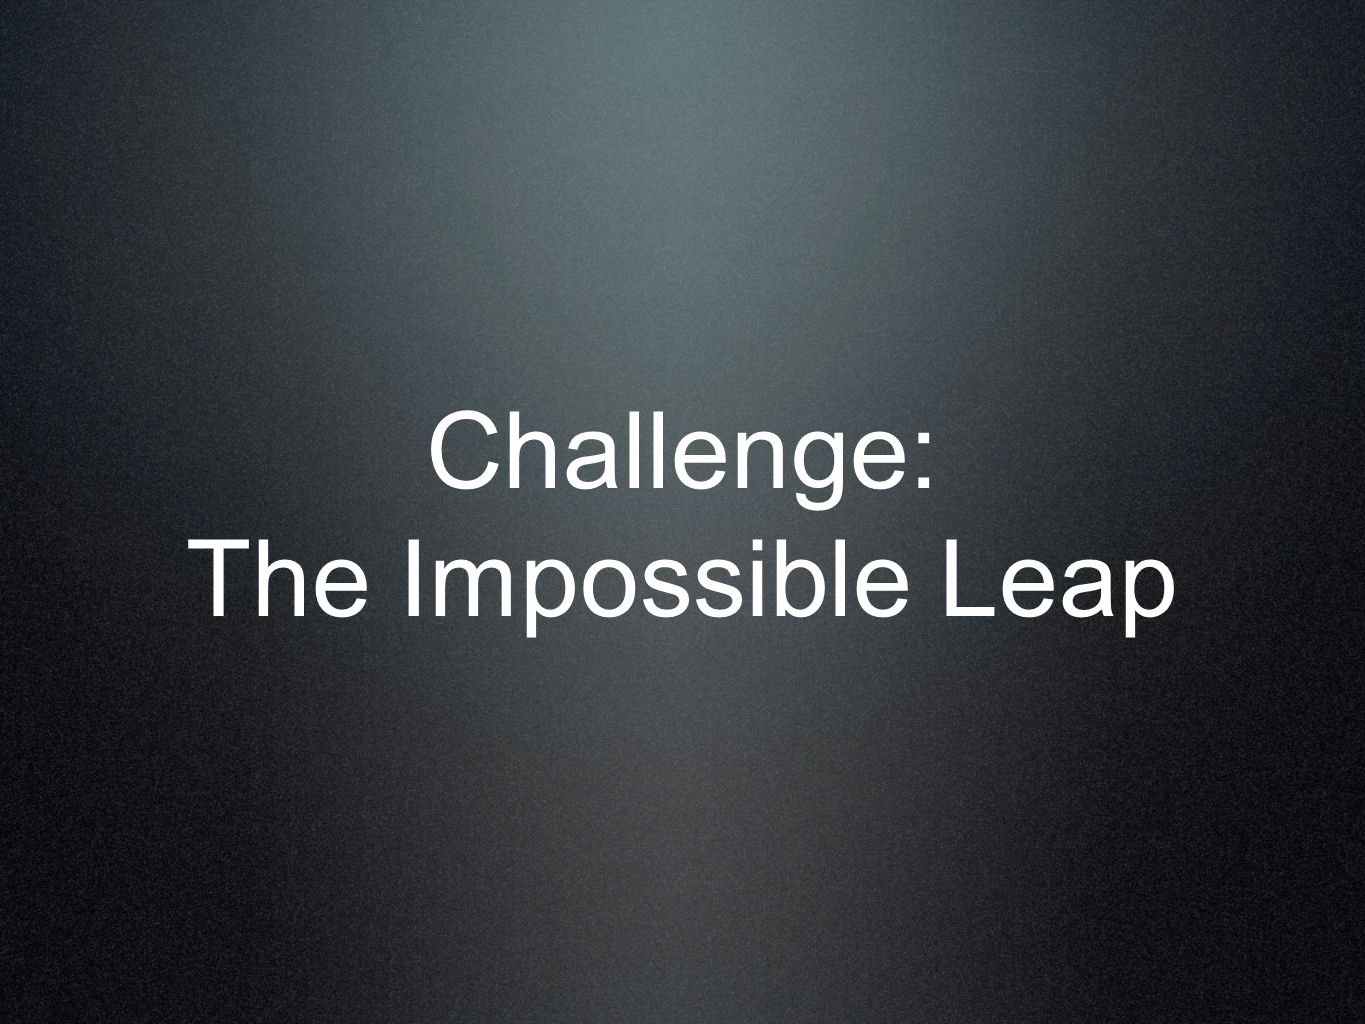 Challenge: The Impossible Leap